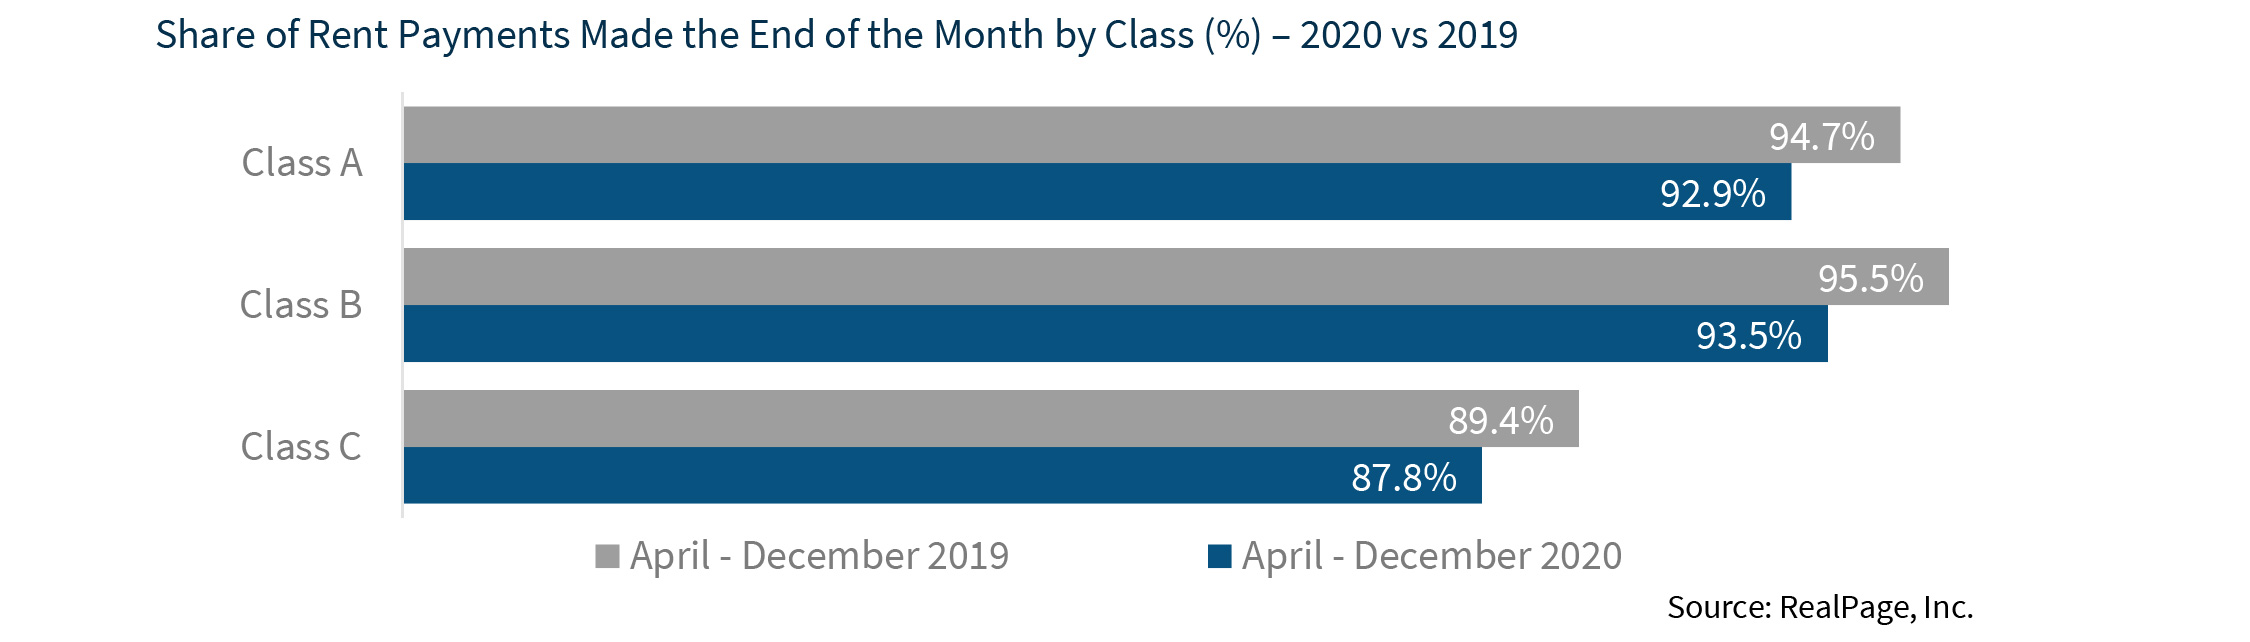 Share of Rent Payments Made the End of the Month by Class (%) – 2020 vs 2019